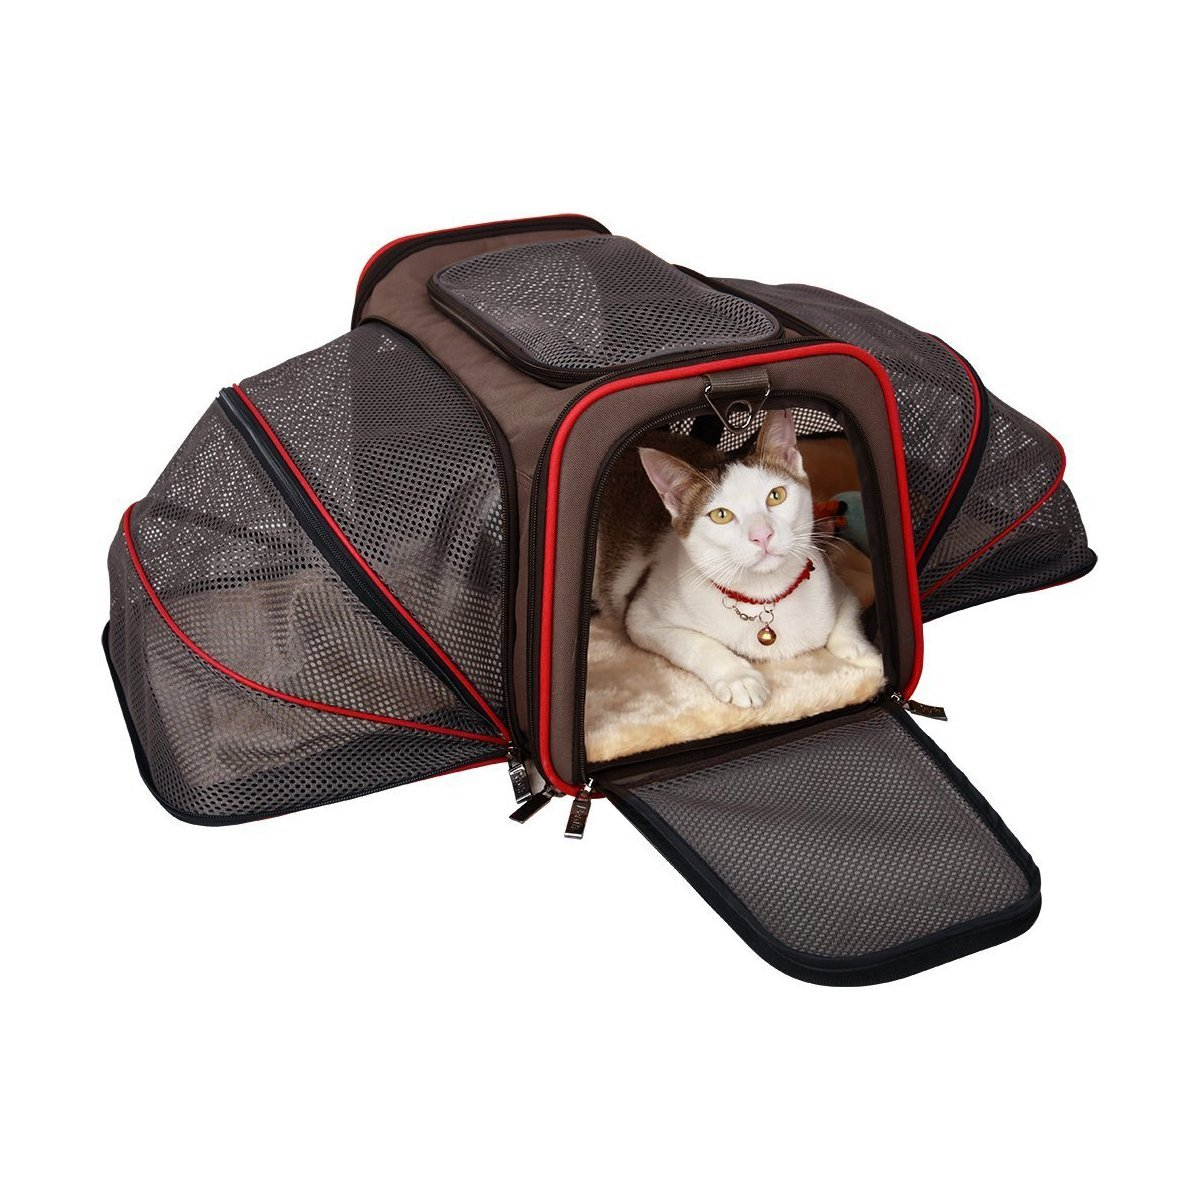 PCE01BKL Heavy Duty Expandable Pet Carrier for Travel - Airline Approved